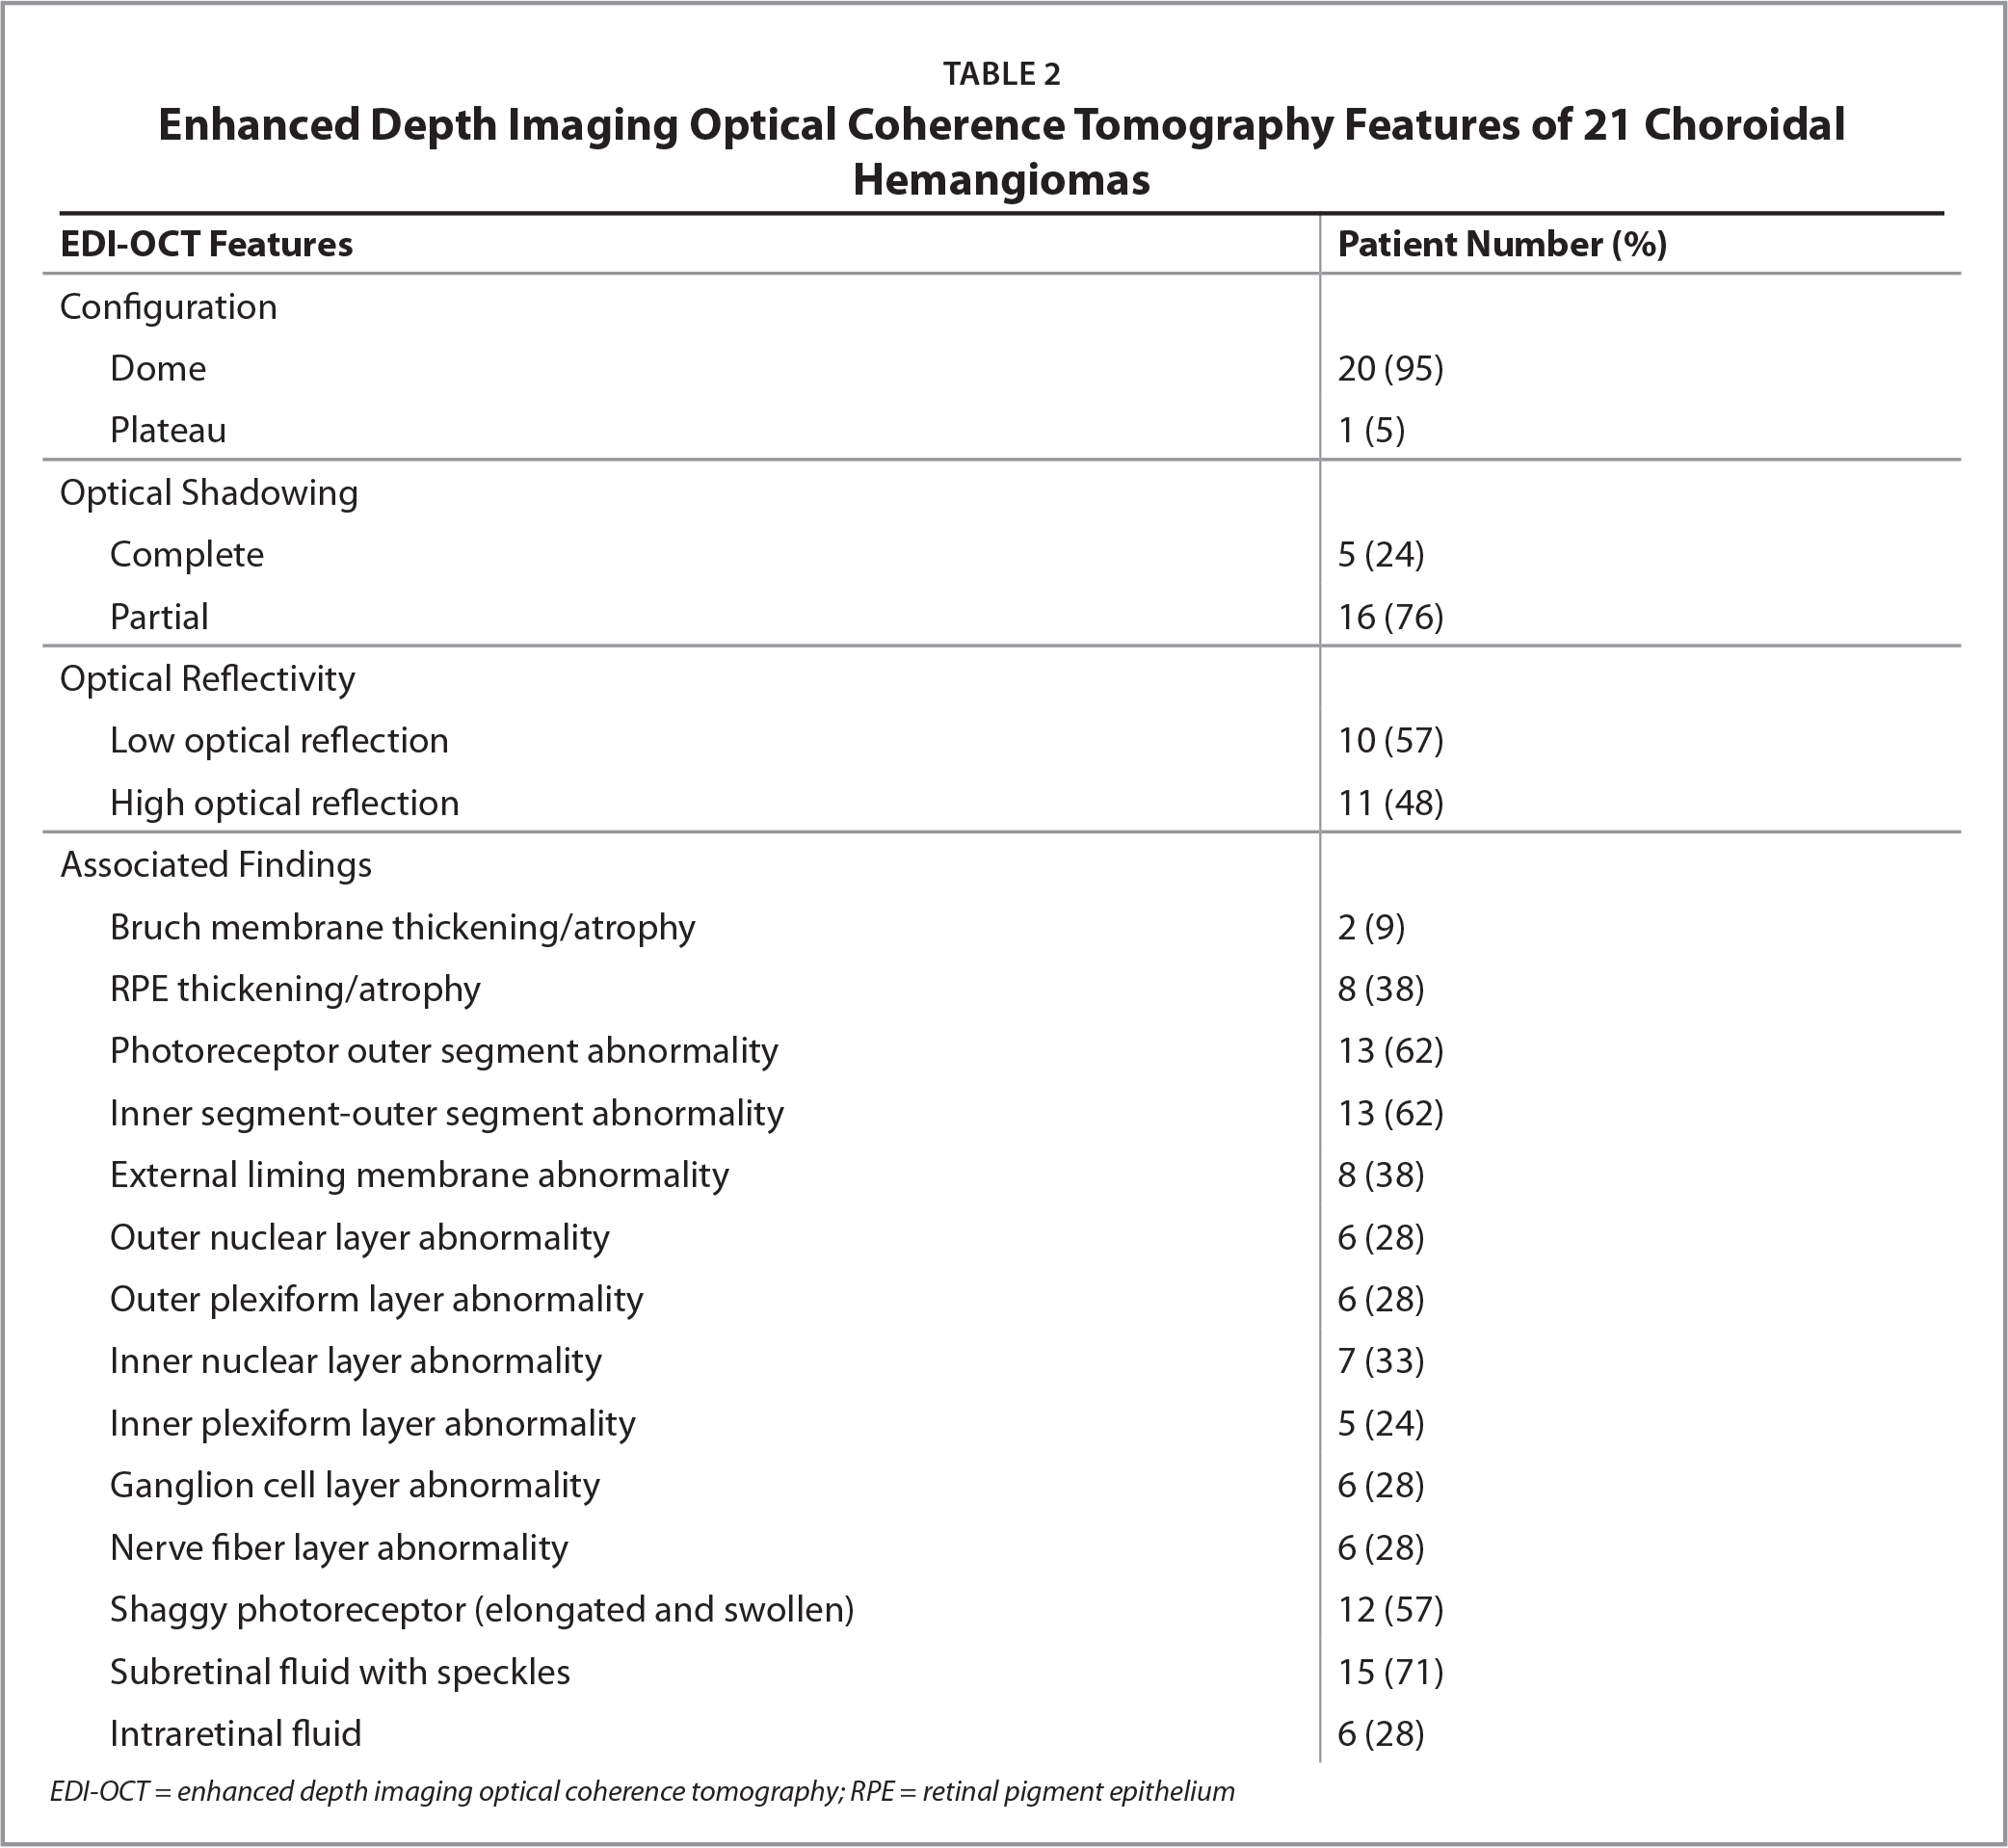 Enhanced Depth Imaging Optical Coherence Tomography Features of 21 Choroidal Hemangiomas